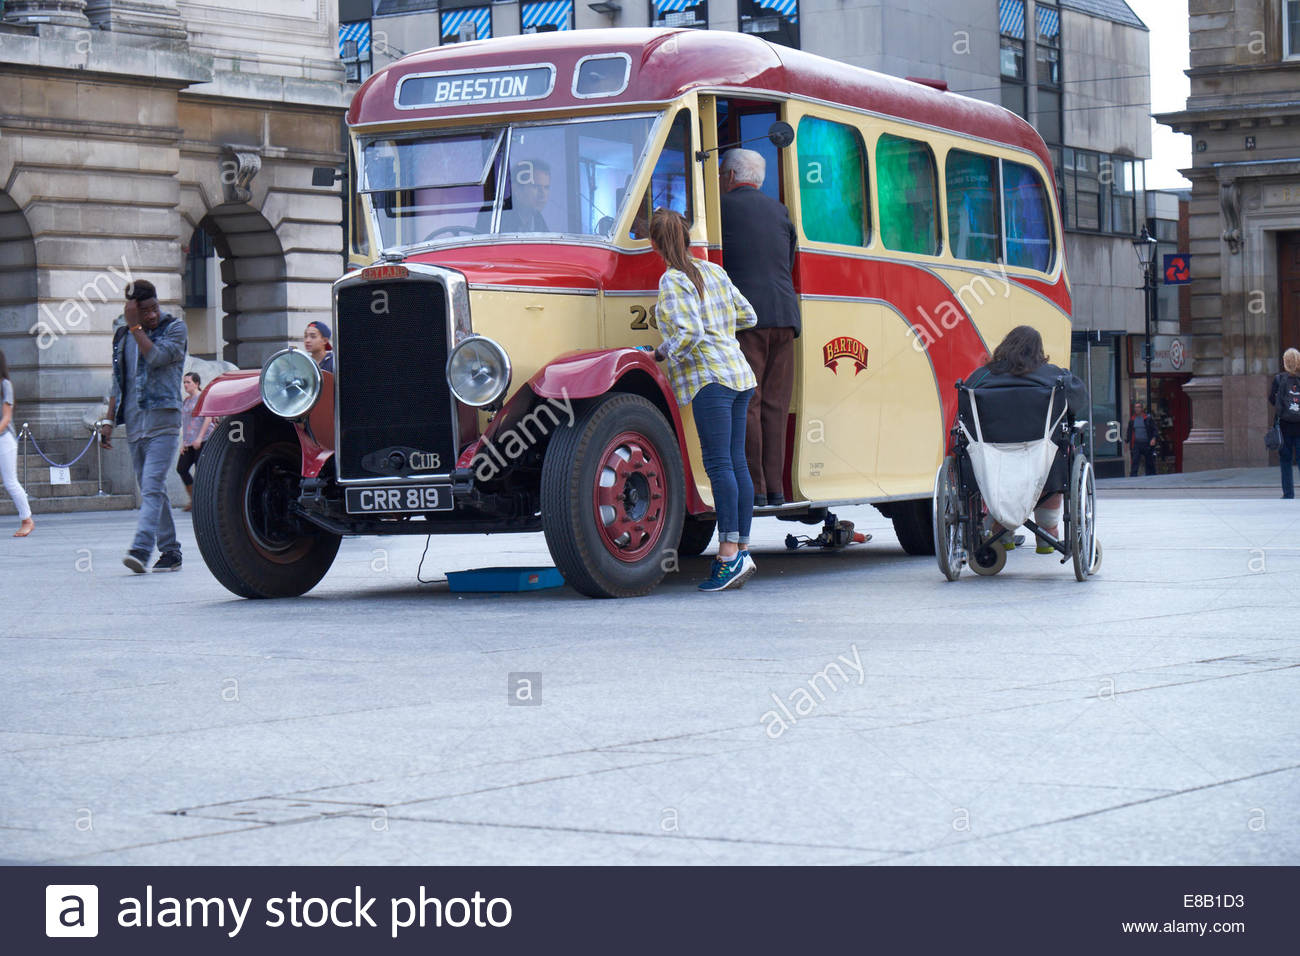 Nottingham, UK, 3 October 2014   Classic 1936 Leyland Cub coach converted into a light installation by artist, Raphael - Stock Image